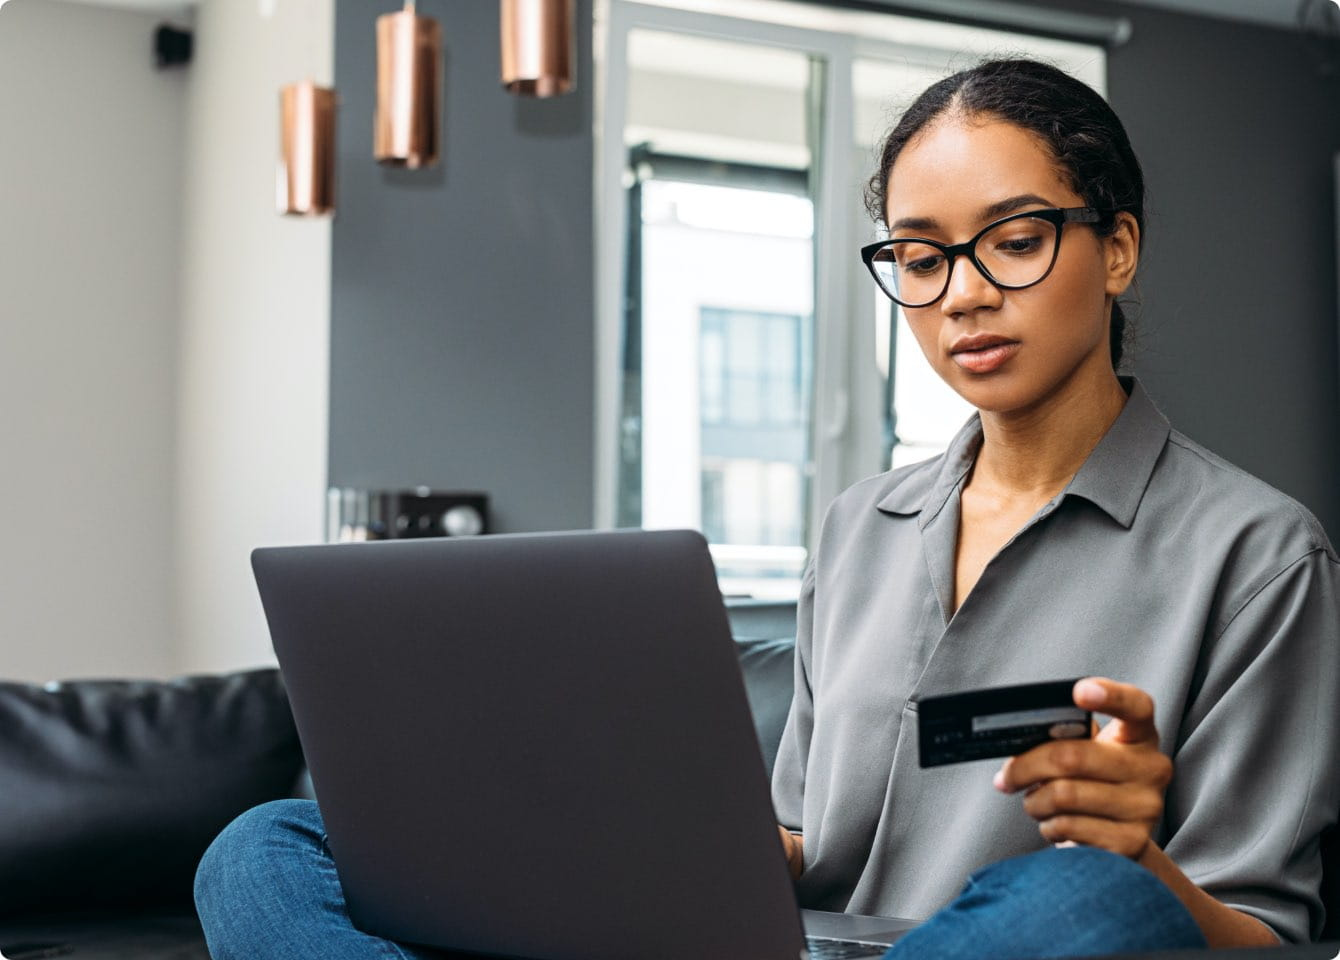 A woman on the laptop entering her credit card info for online payments